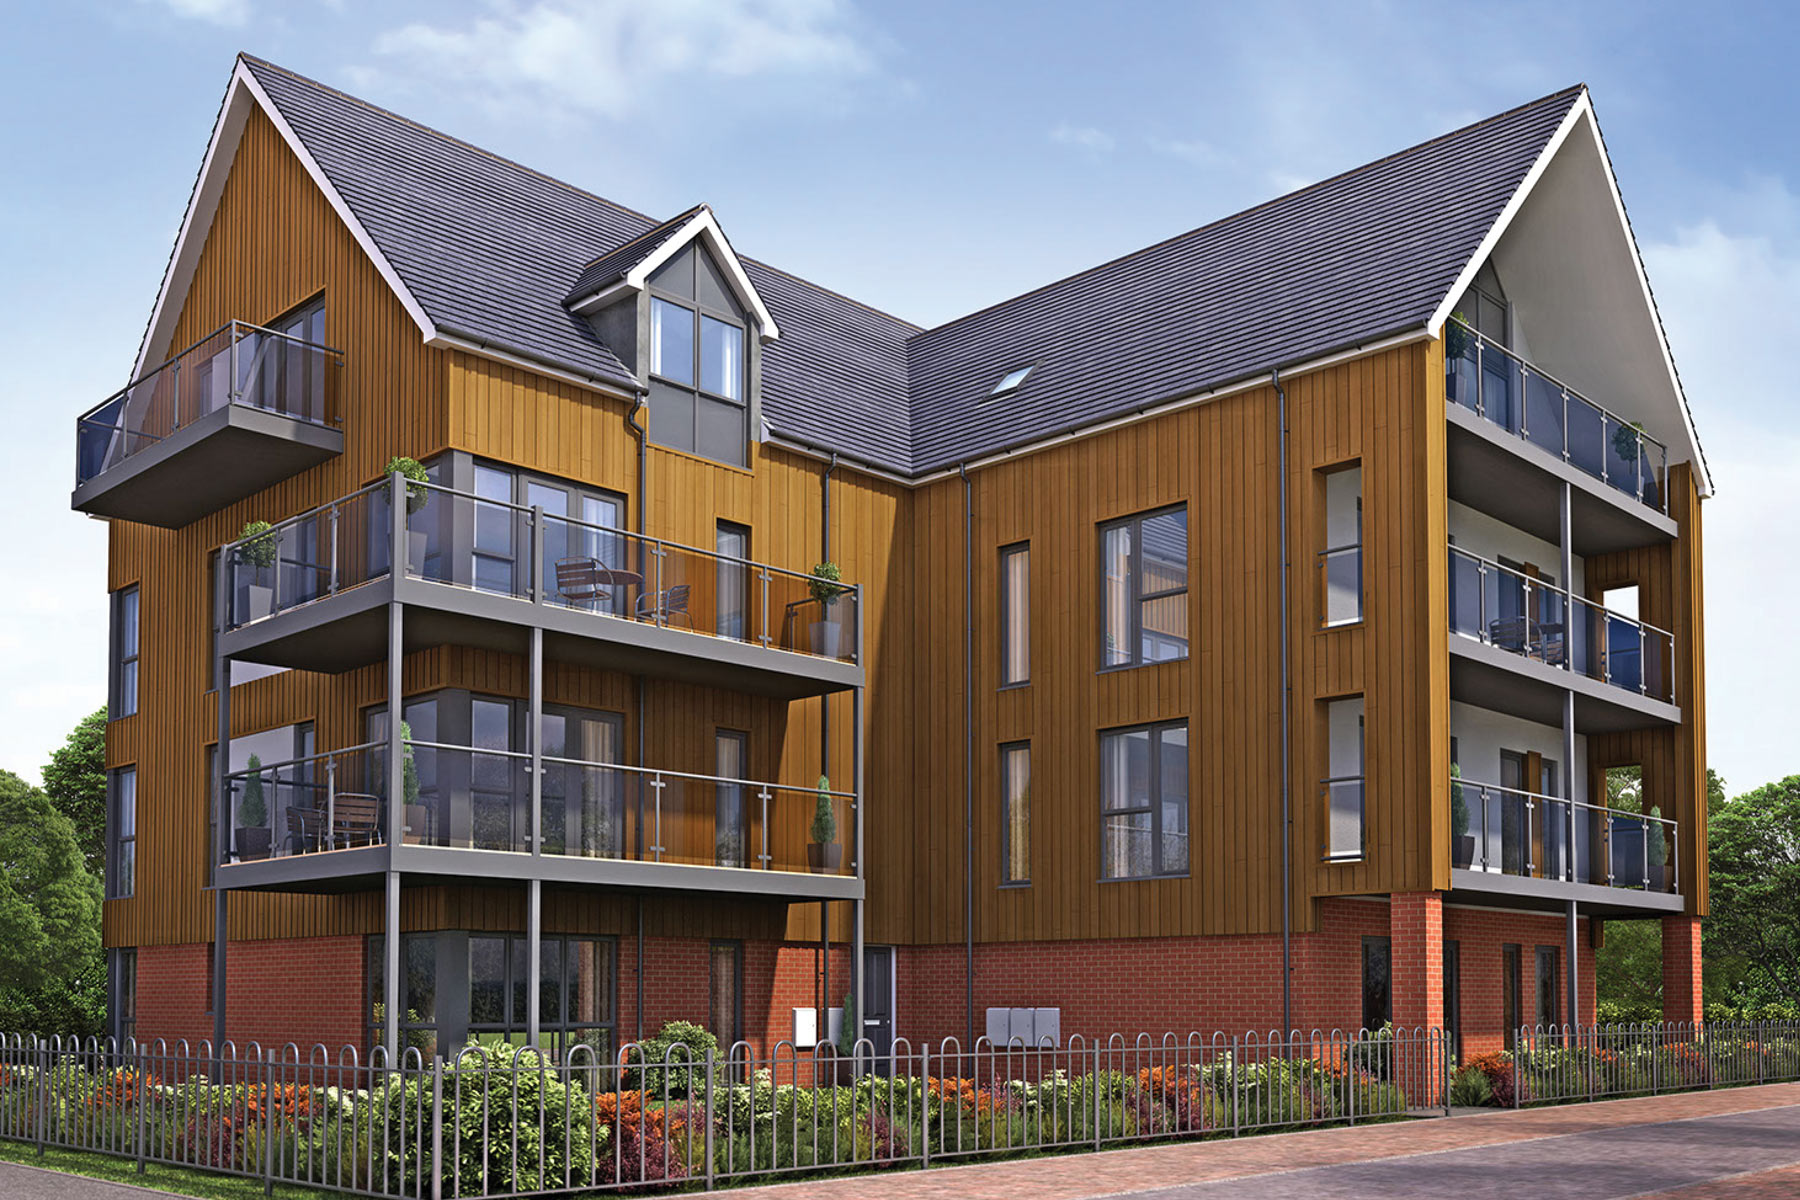 Meridian square new homes in hurst green taylor wimpey 2 bedroom apartments in dc under 900